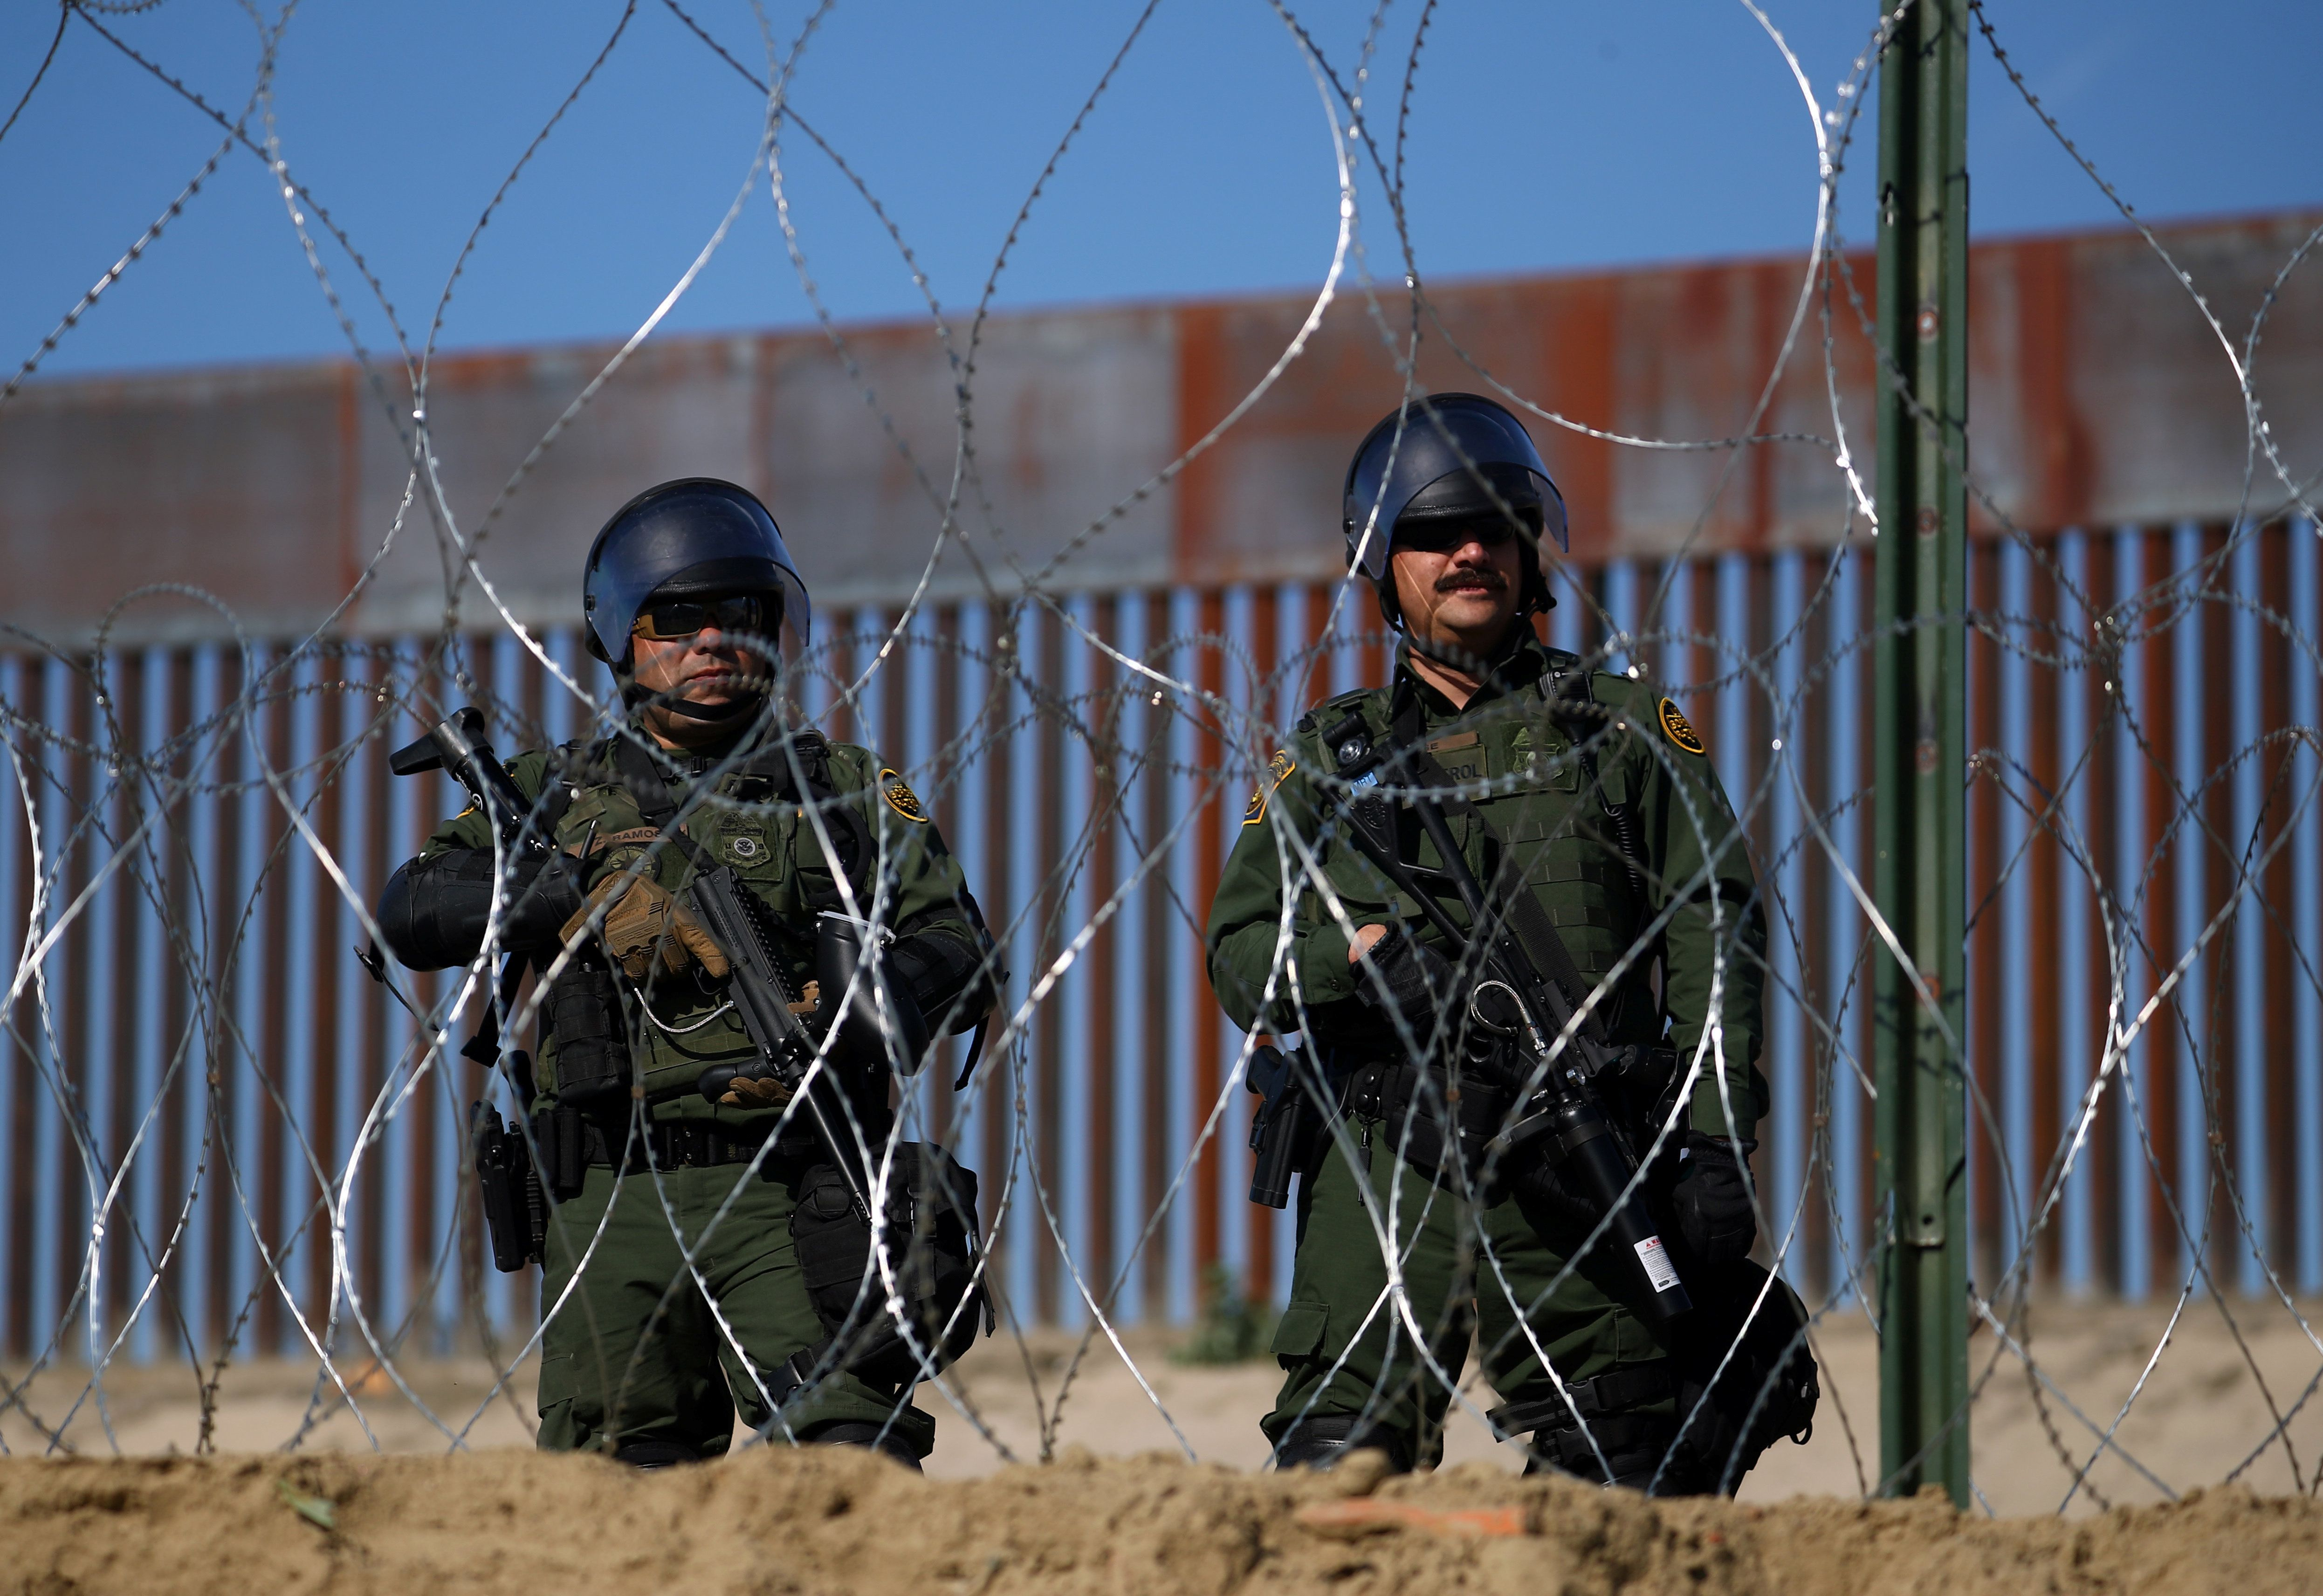 Members of a U.S. border patrol stand near the border fence between Mexico and the United States as migrants stand near by in Tijuana, Mexico, November 25, 2018. REUTERS/Hannah McKay